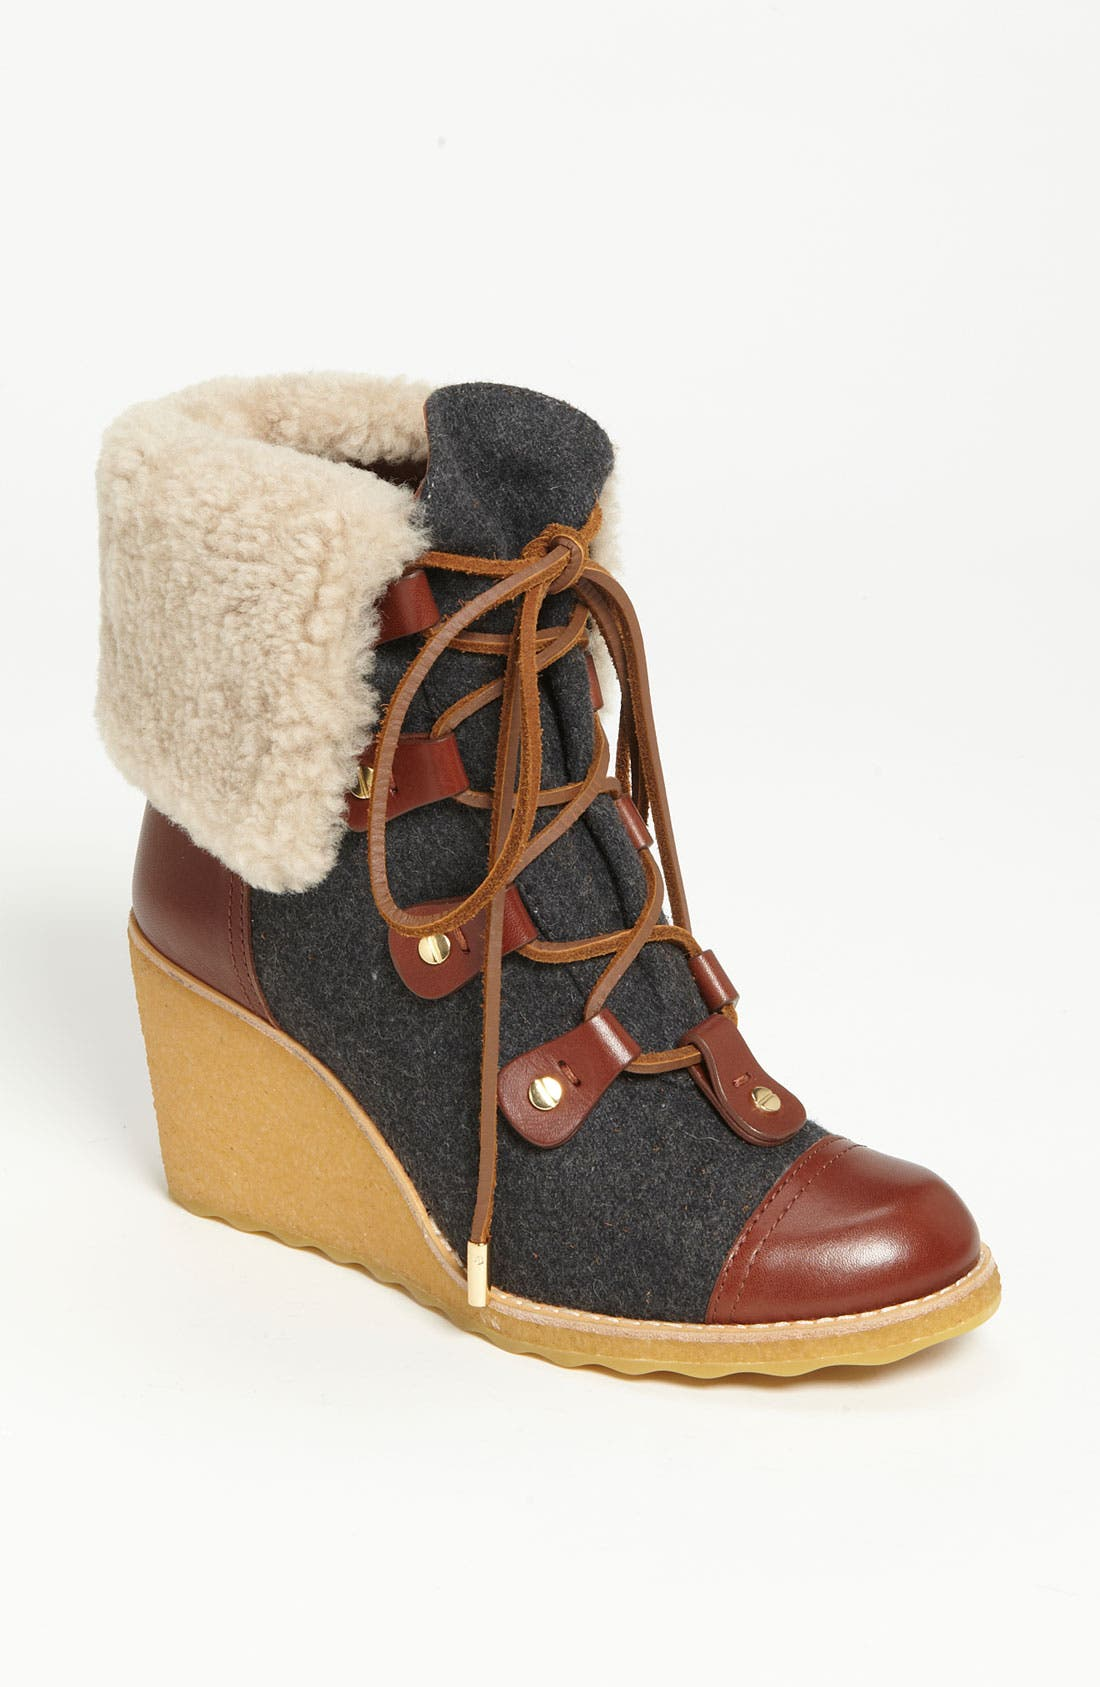 'Marley' Wedge Bootie,                             Main thumbnail 1, color,                             058